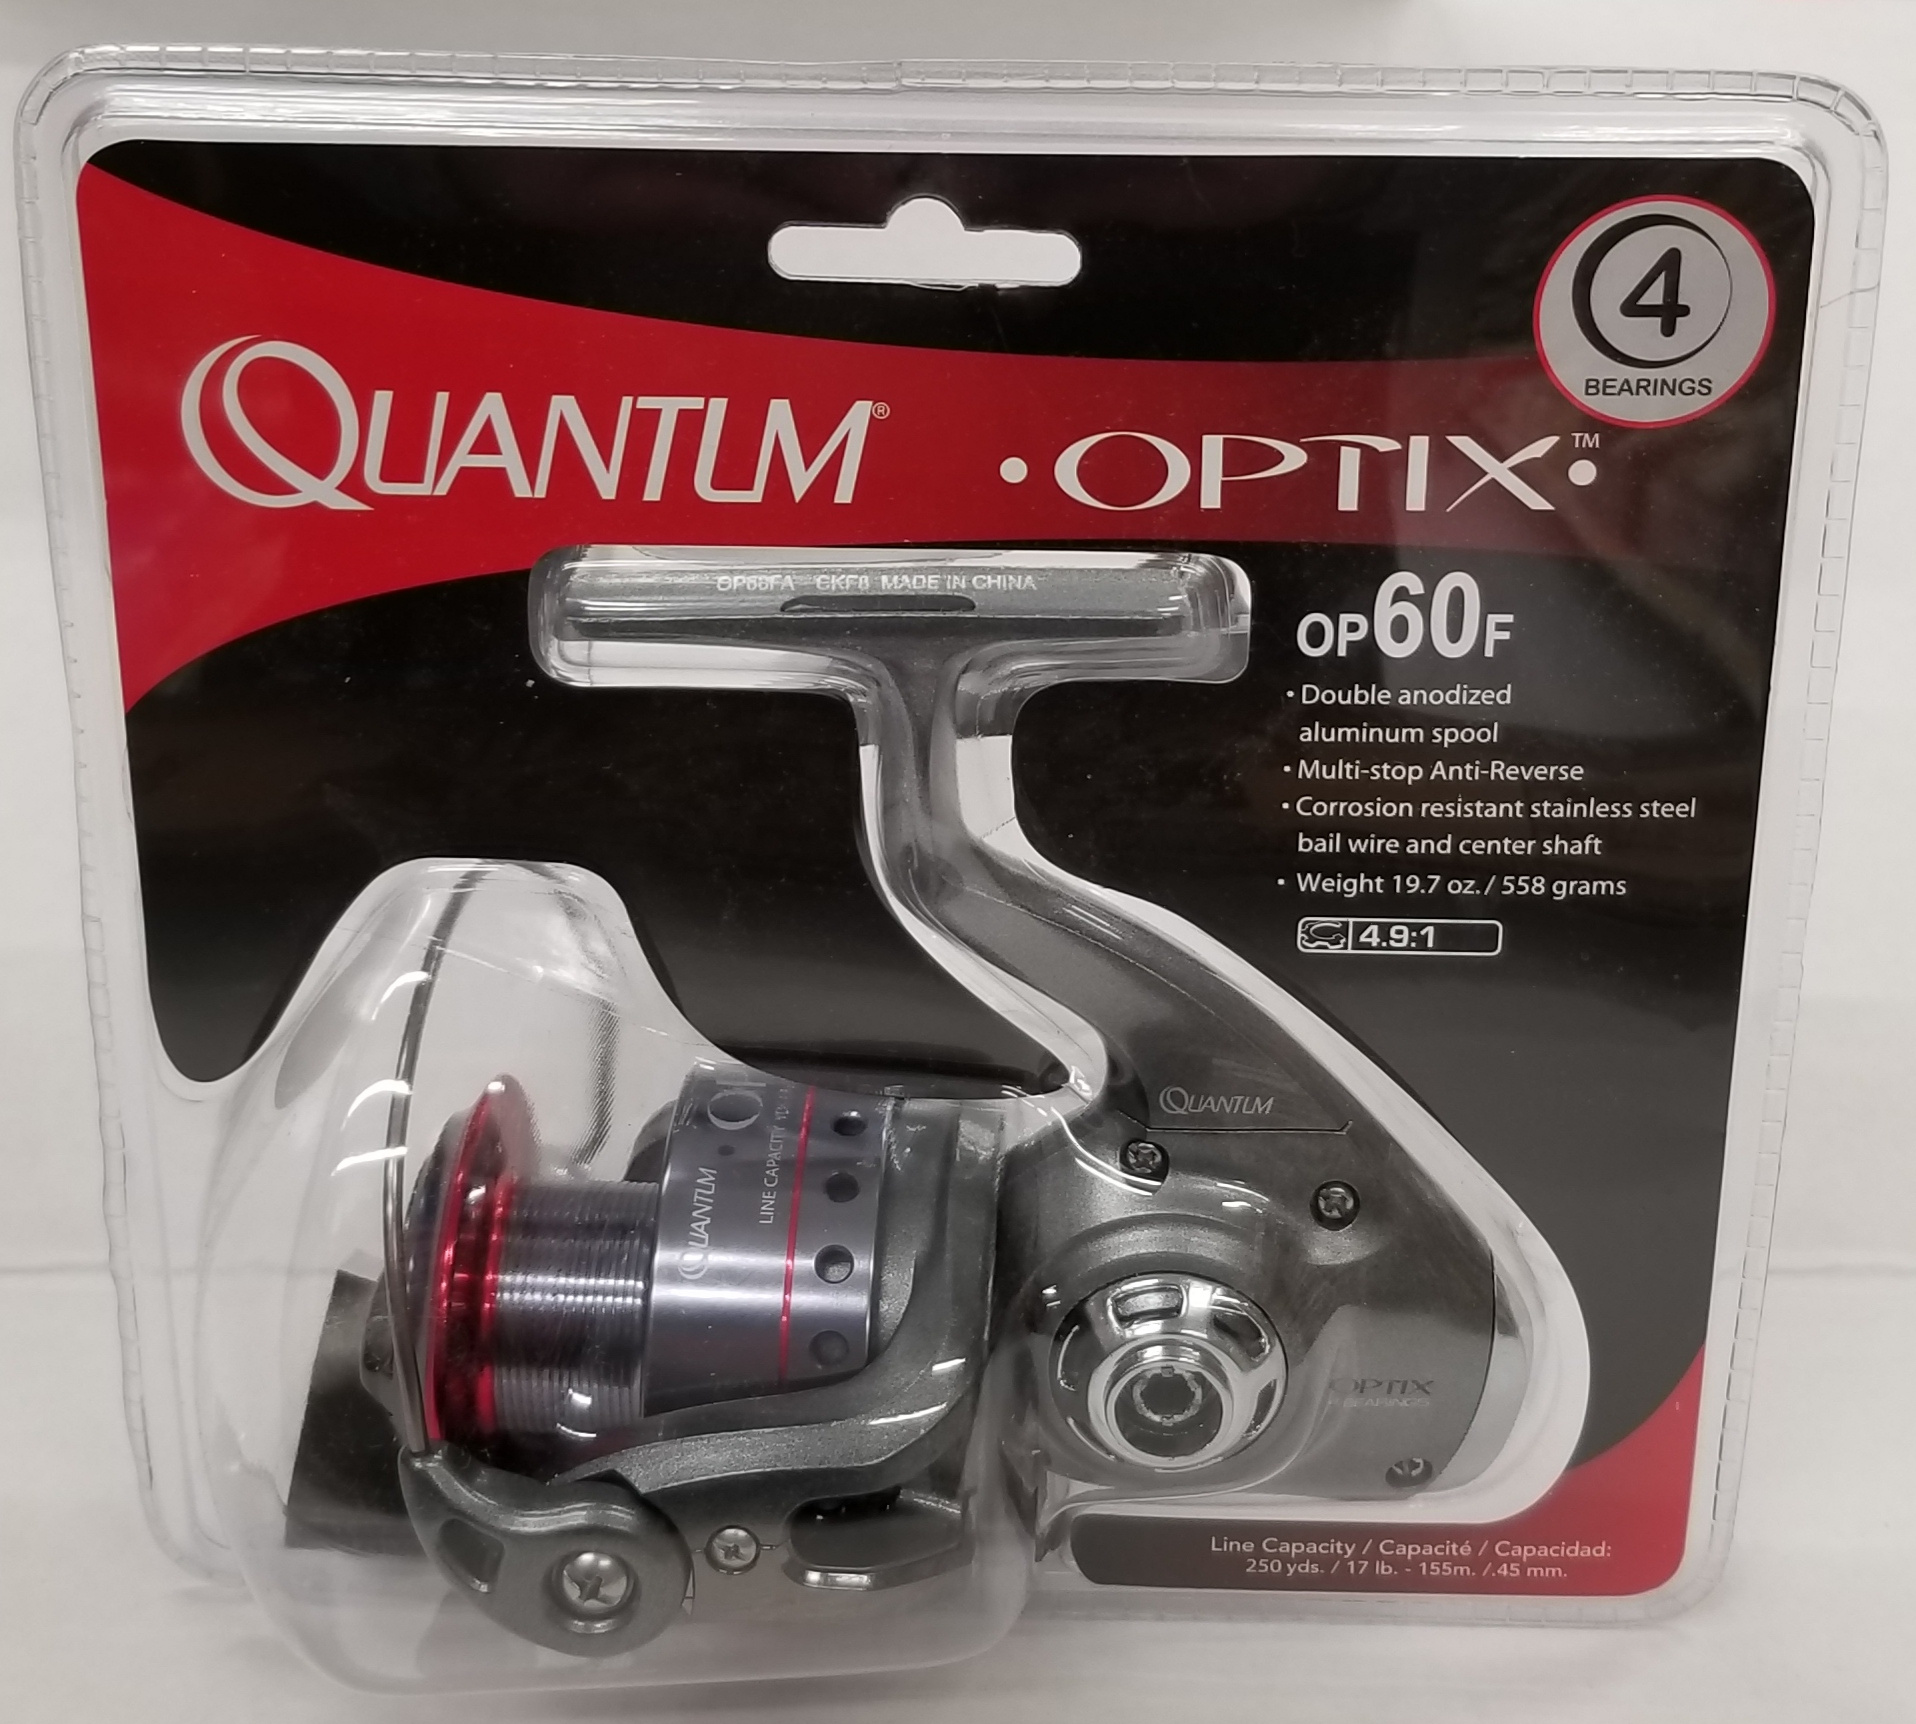 Maurice Sporting Gds Quantum Optix Op40d Spinning Reel By Quantum Shop Online For Sports Outdoors In The United States